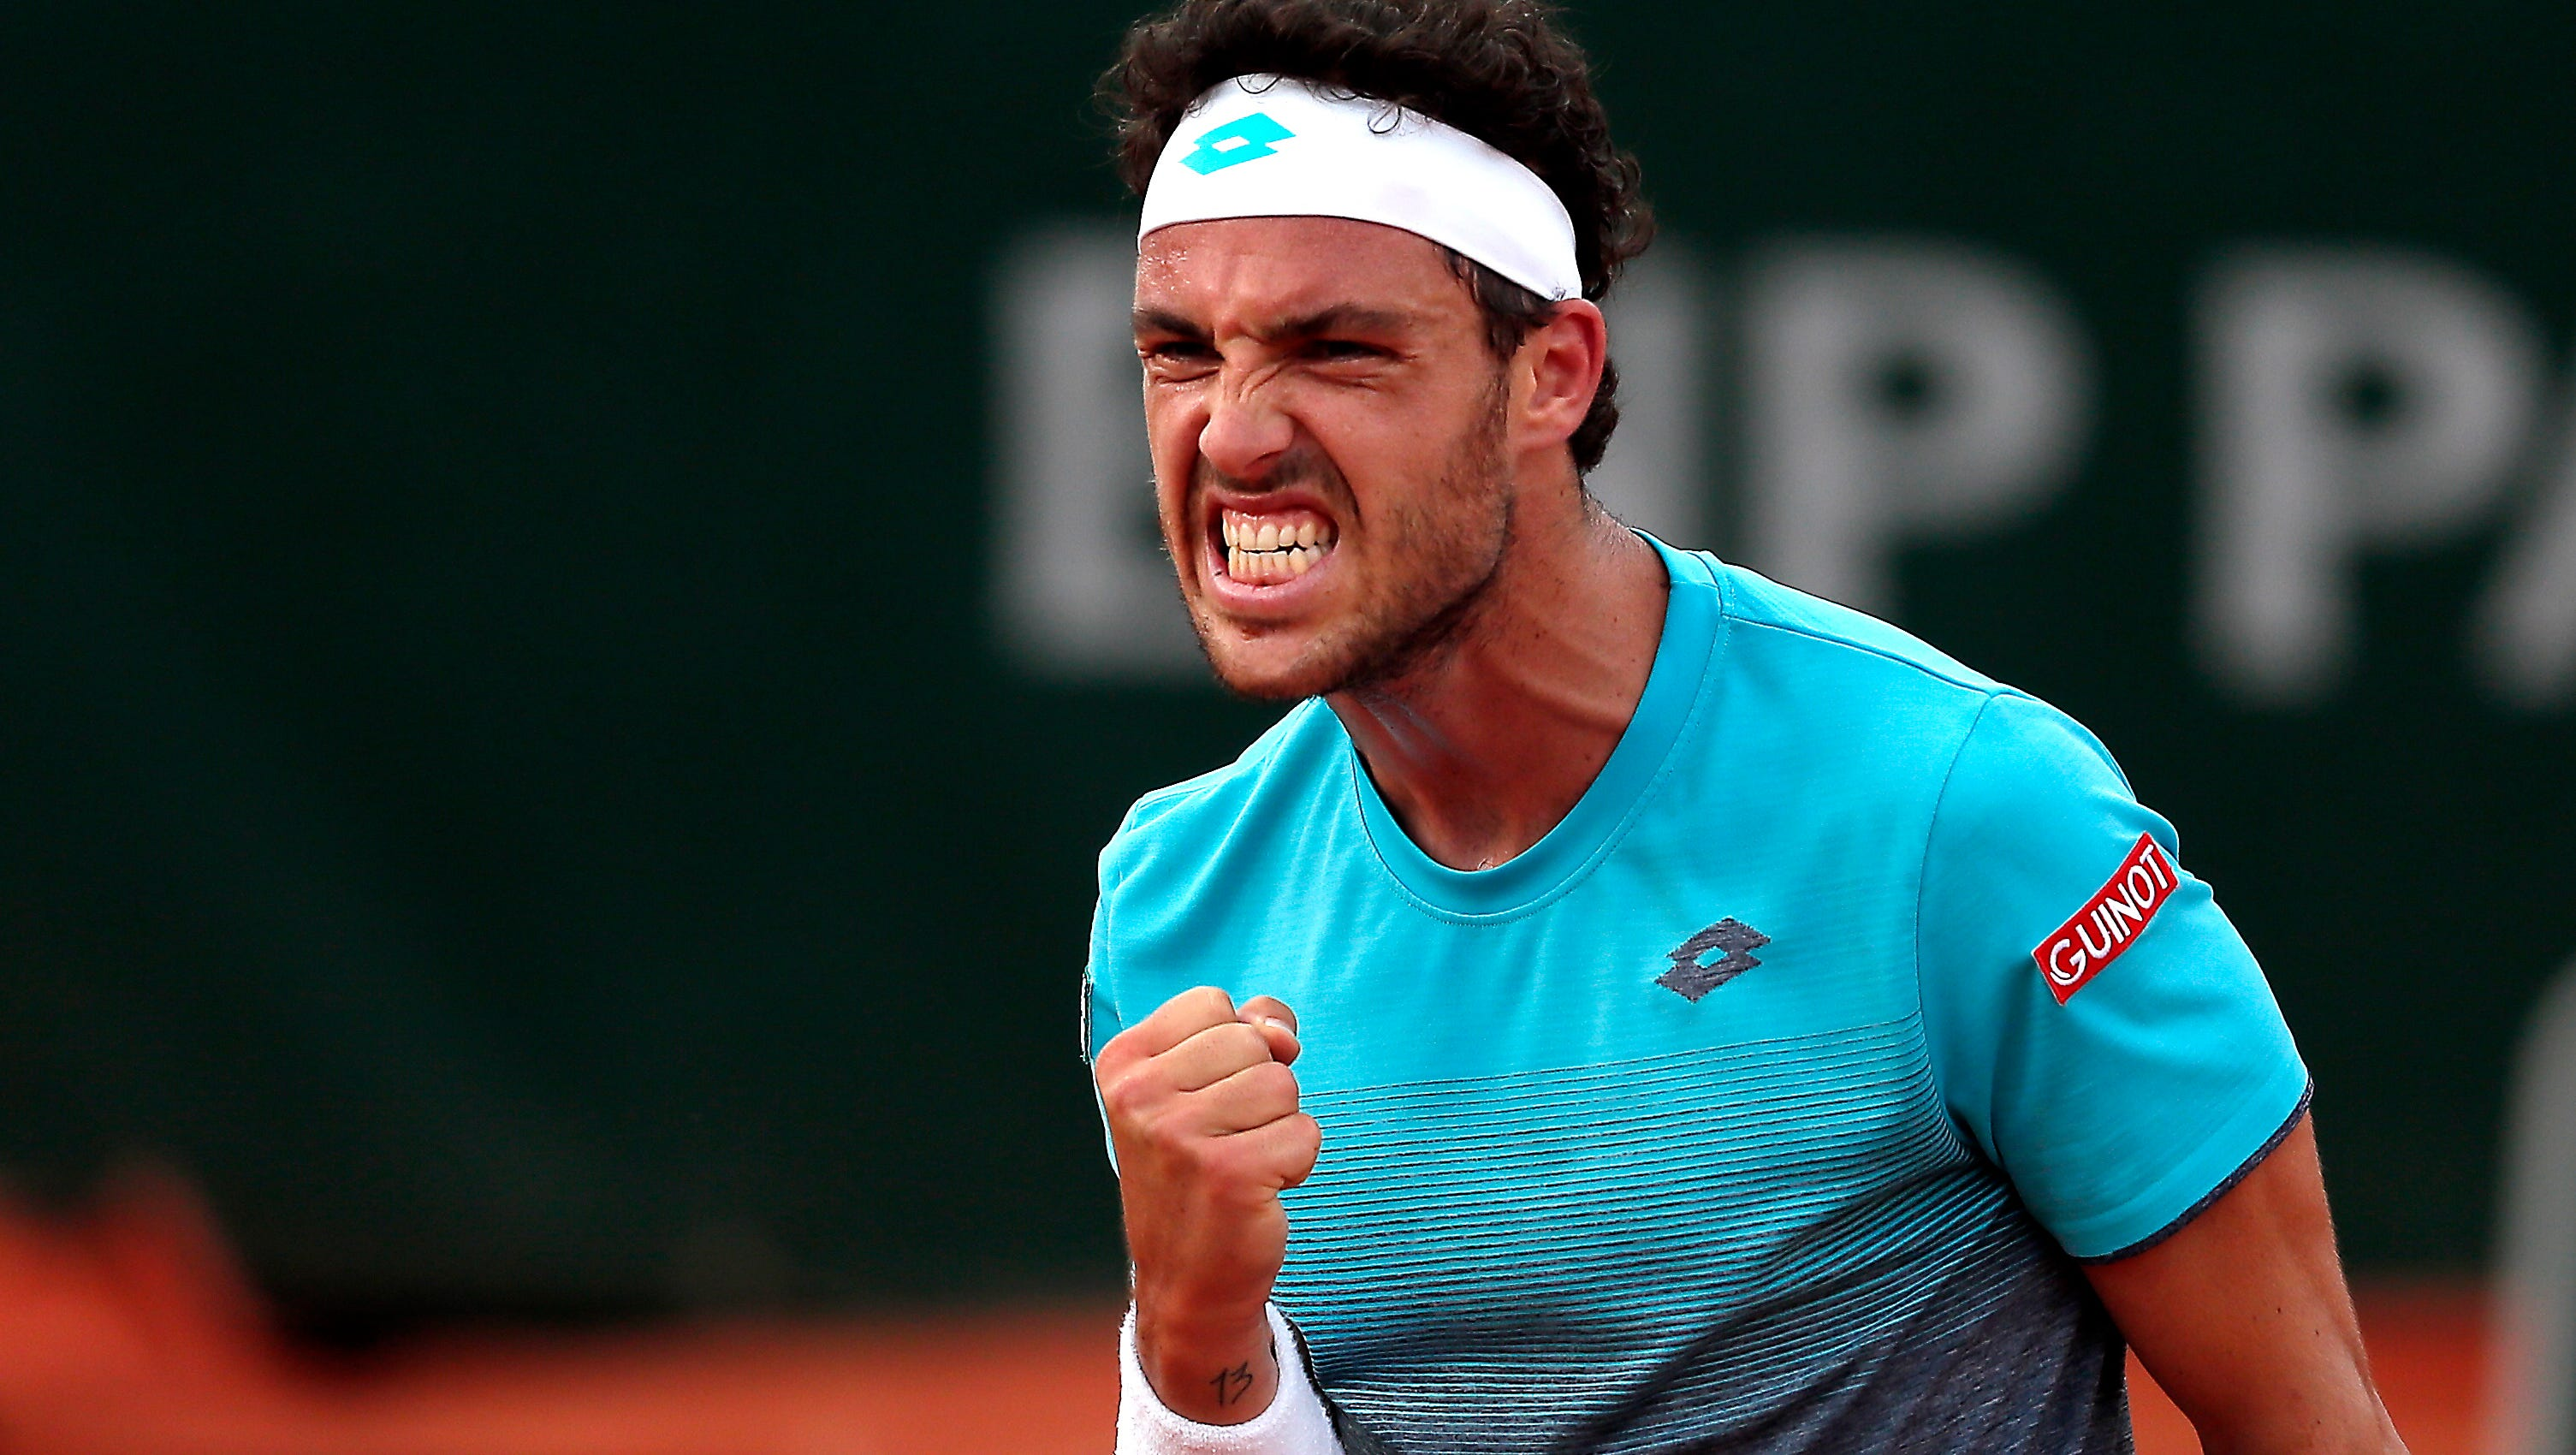 French Open: Marco Cecchinato once was banned for match fixing